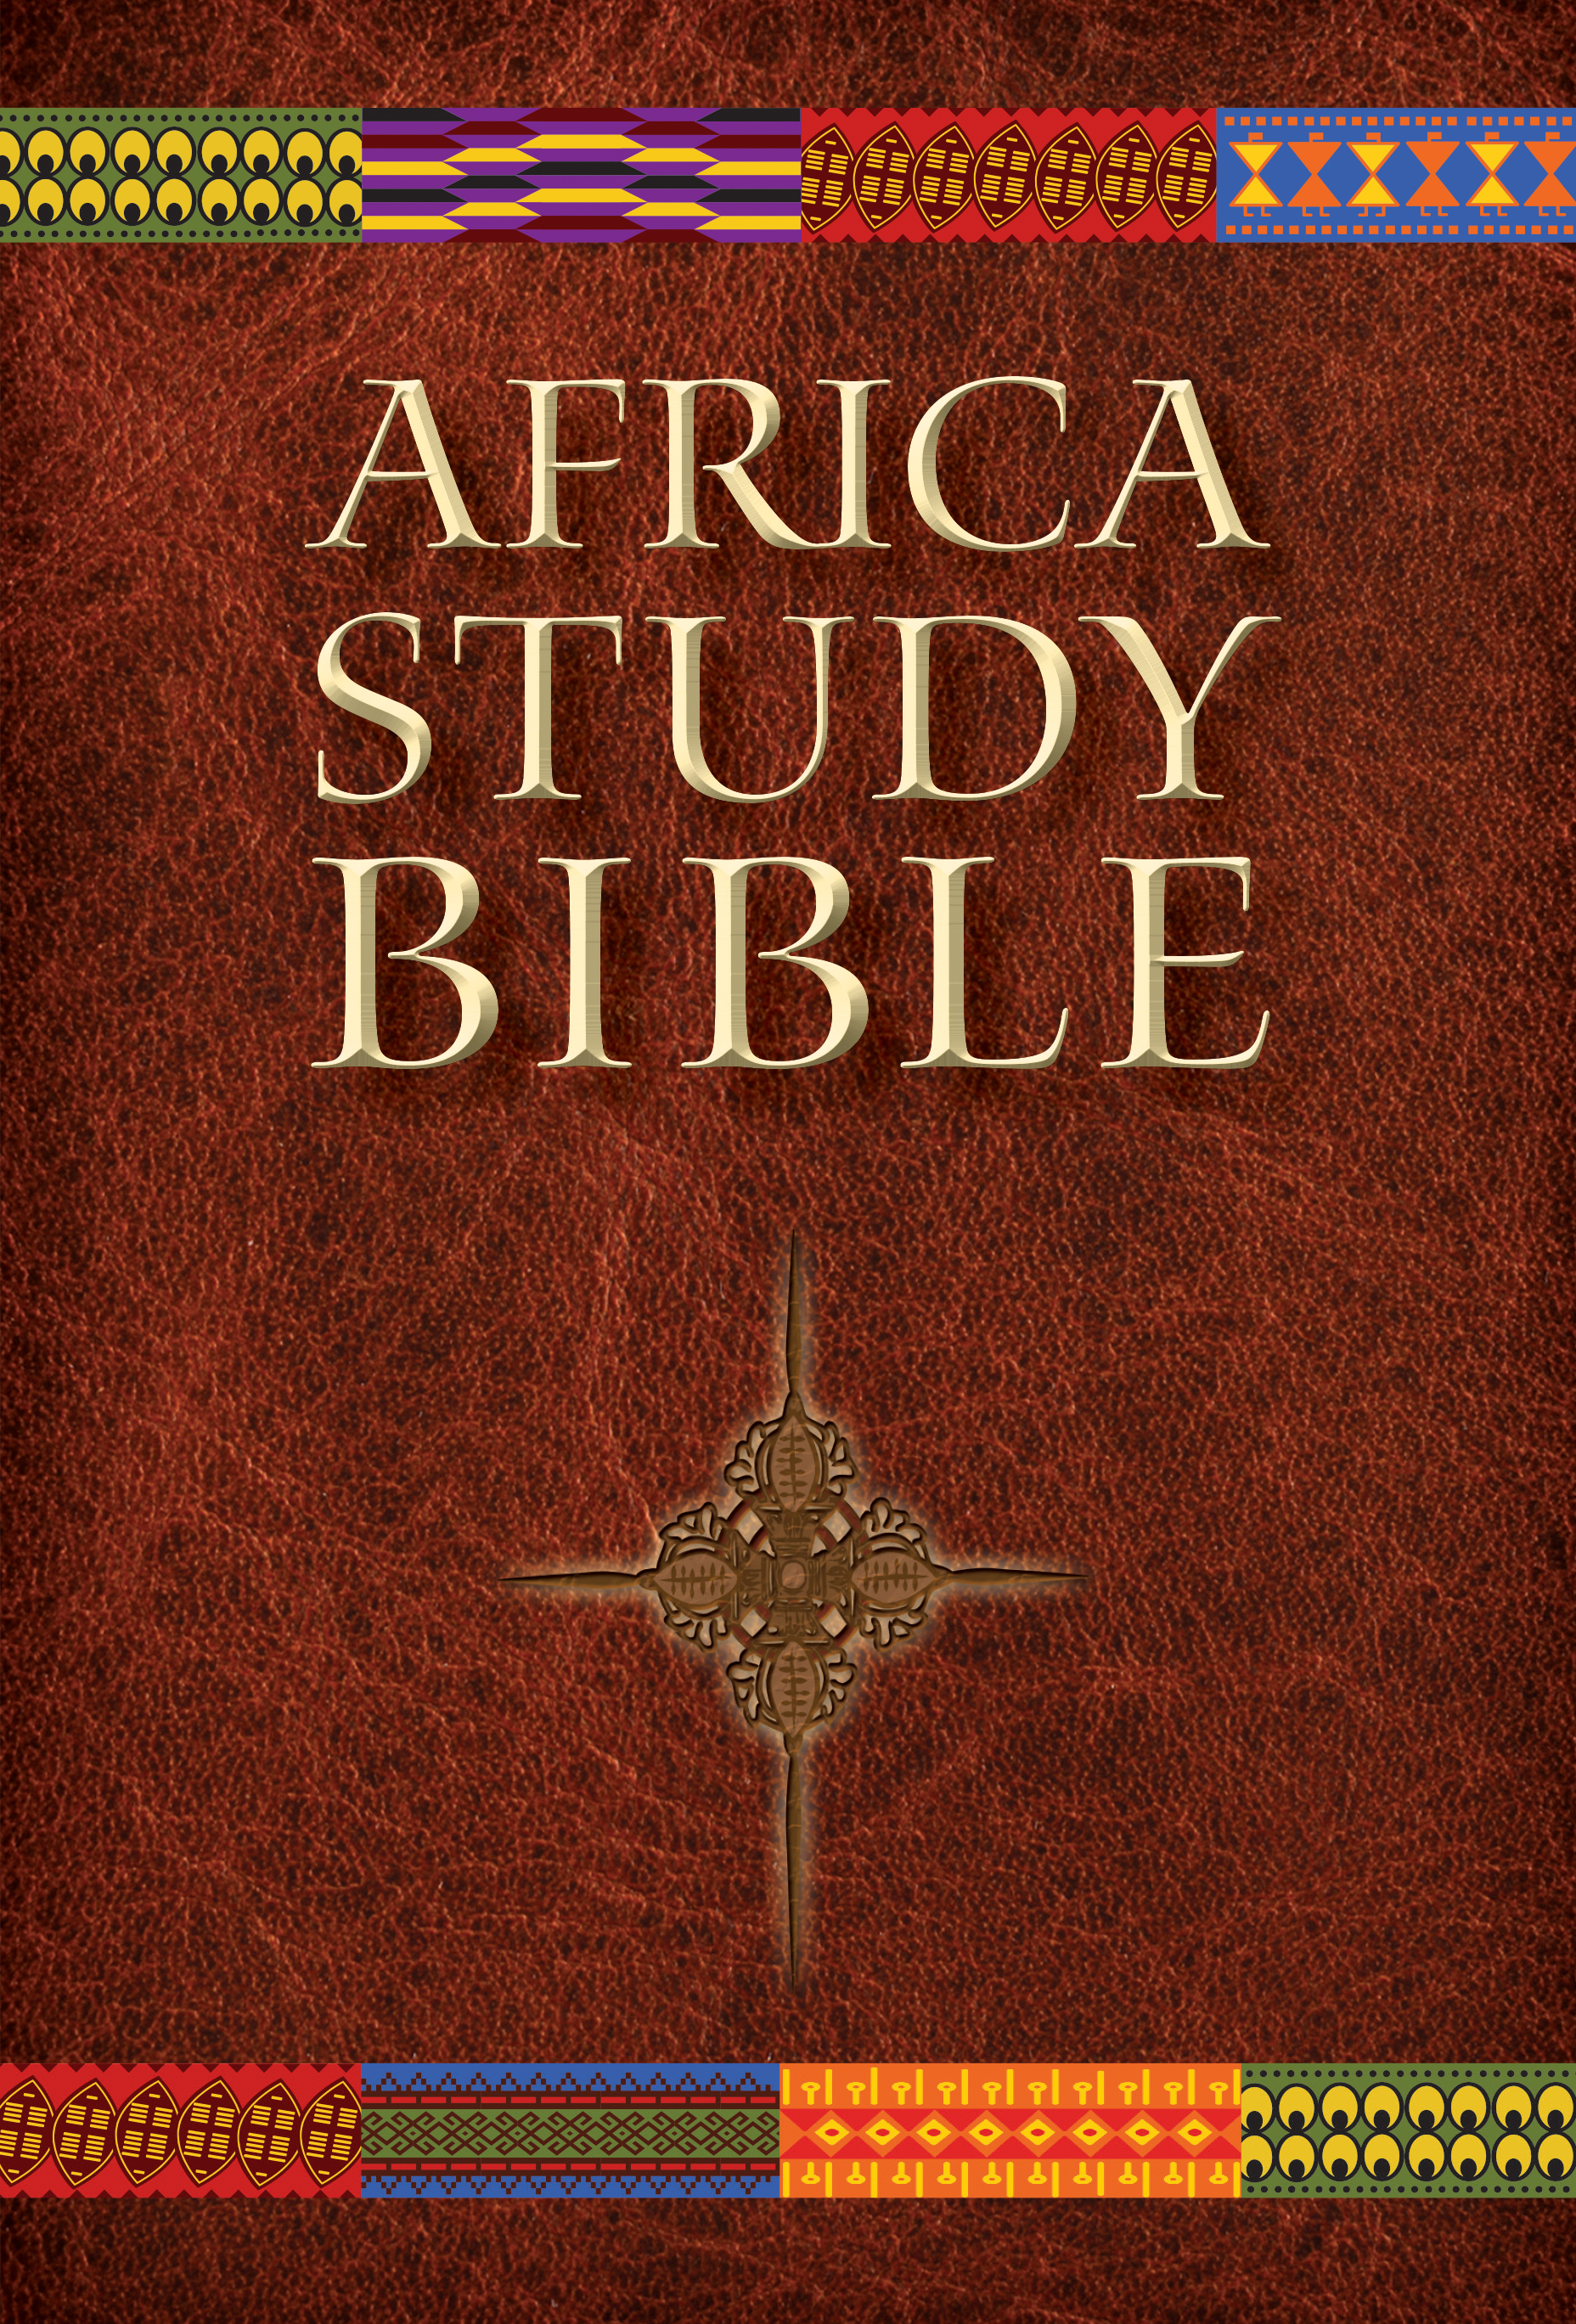 Tyndale house publishers life application study bible nkjv africa study bible nlt malvernweather Choice Image